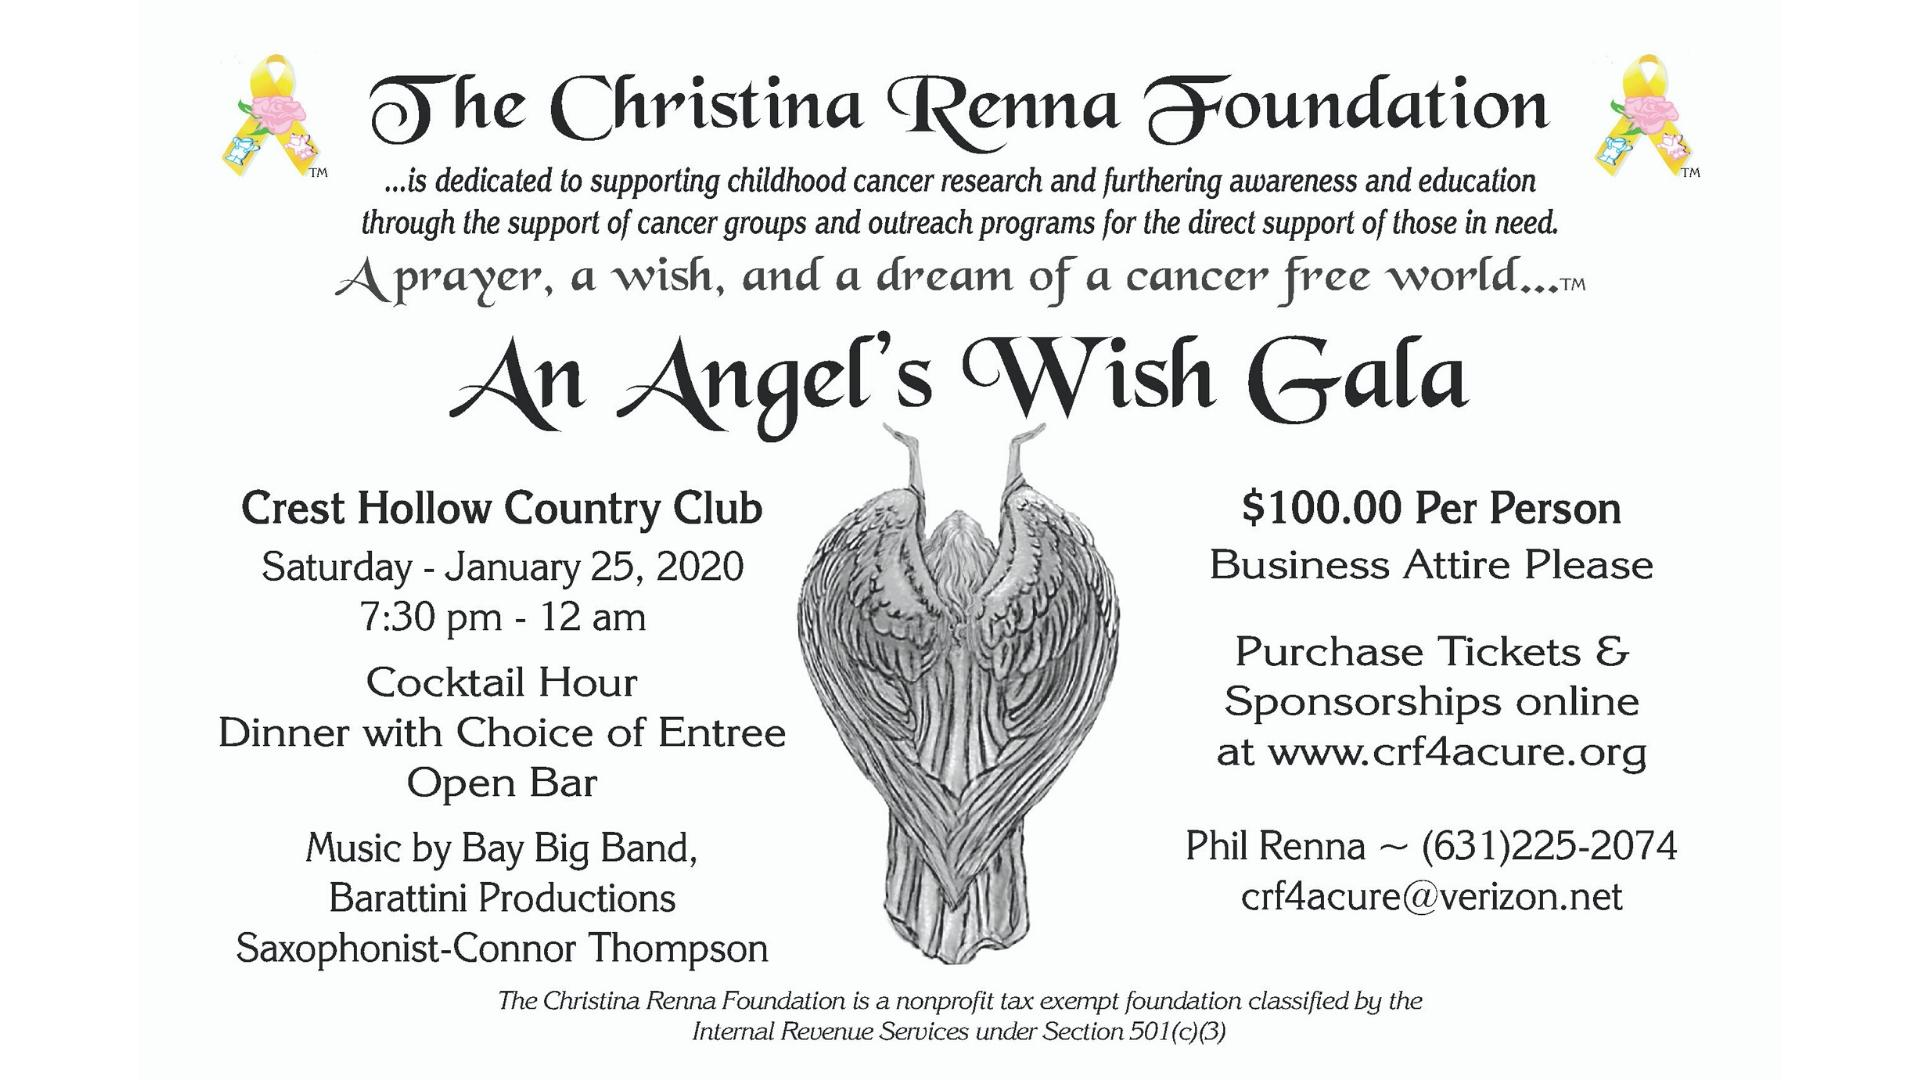 Angel's Wish Gala flyer with event details and an illustration of an angel.